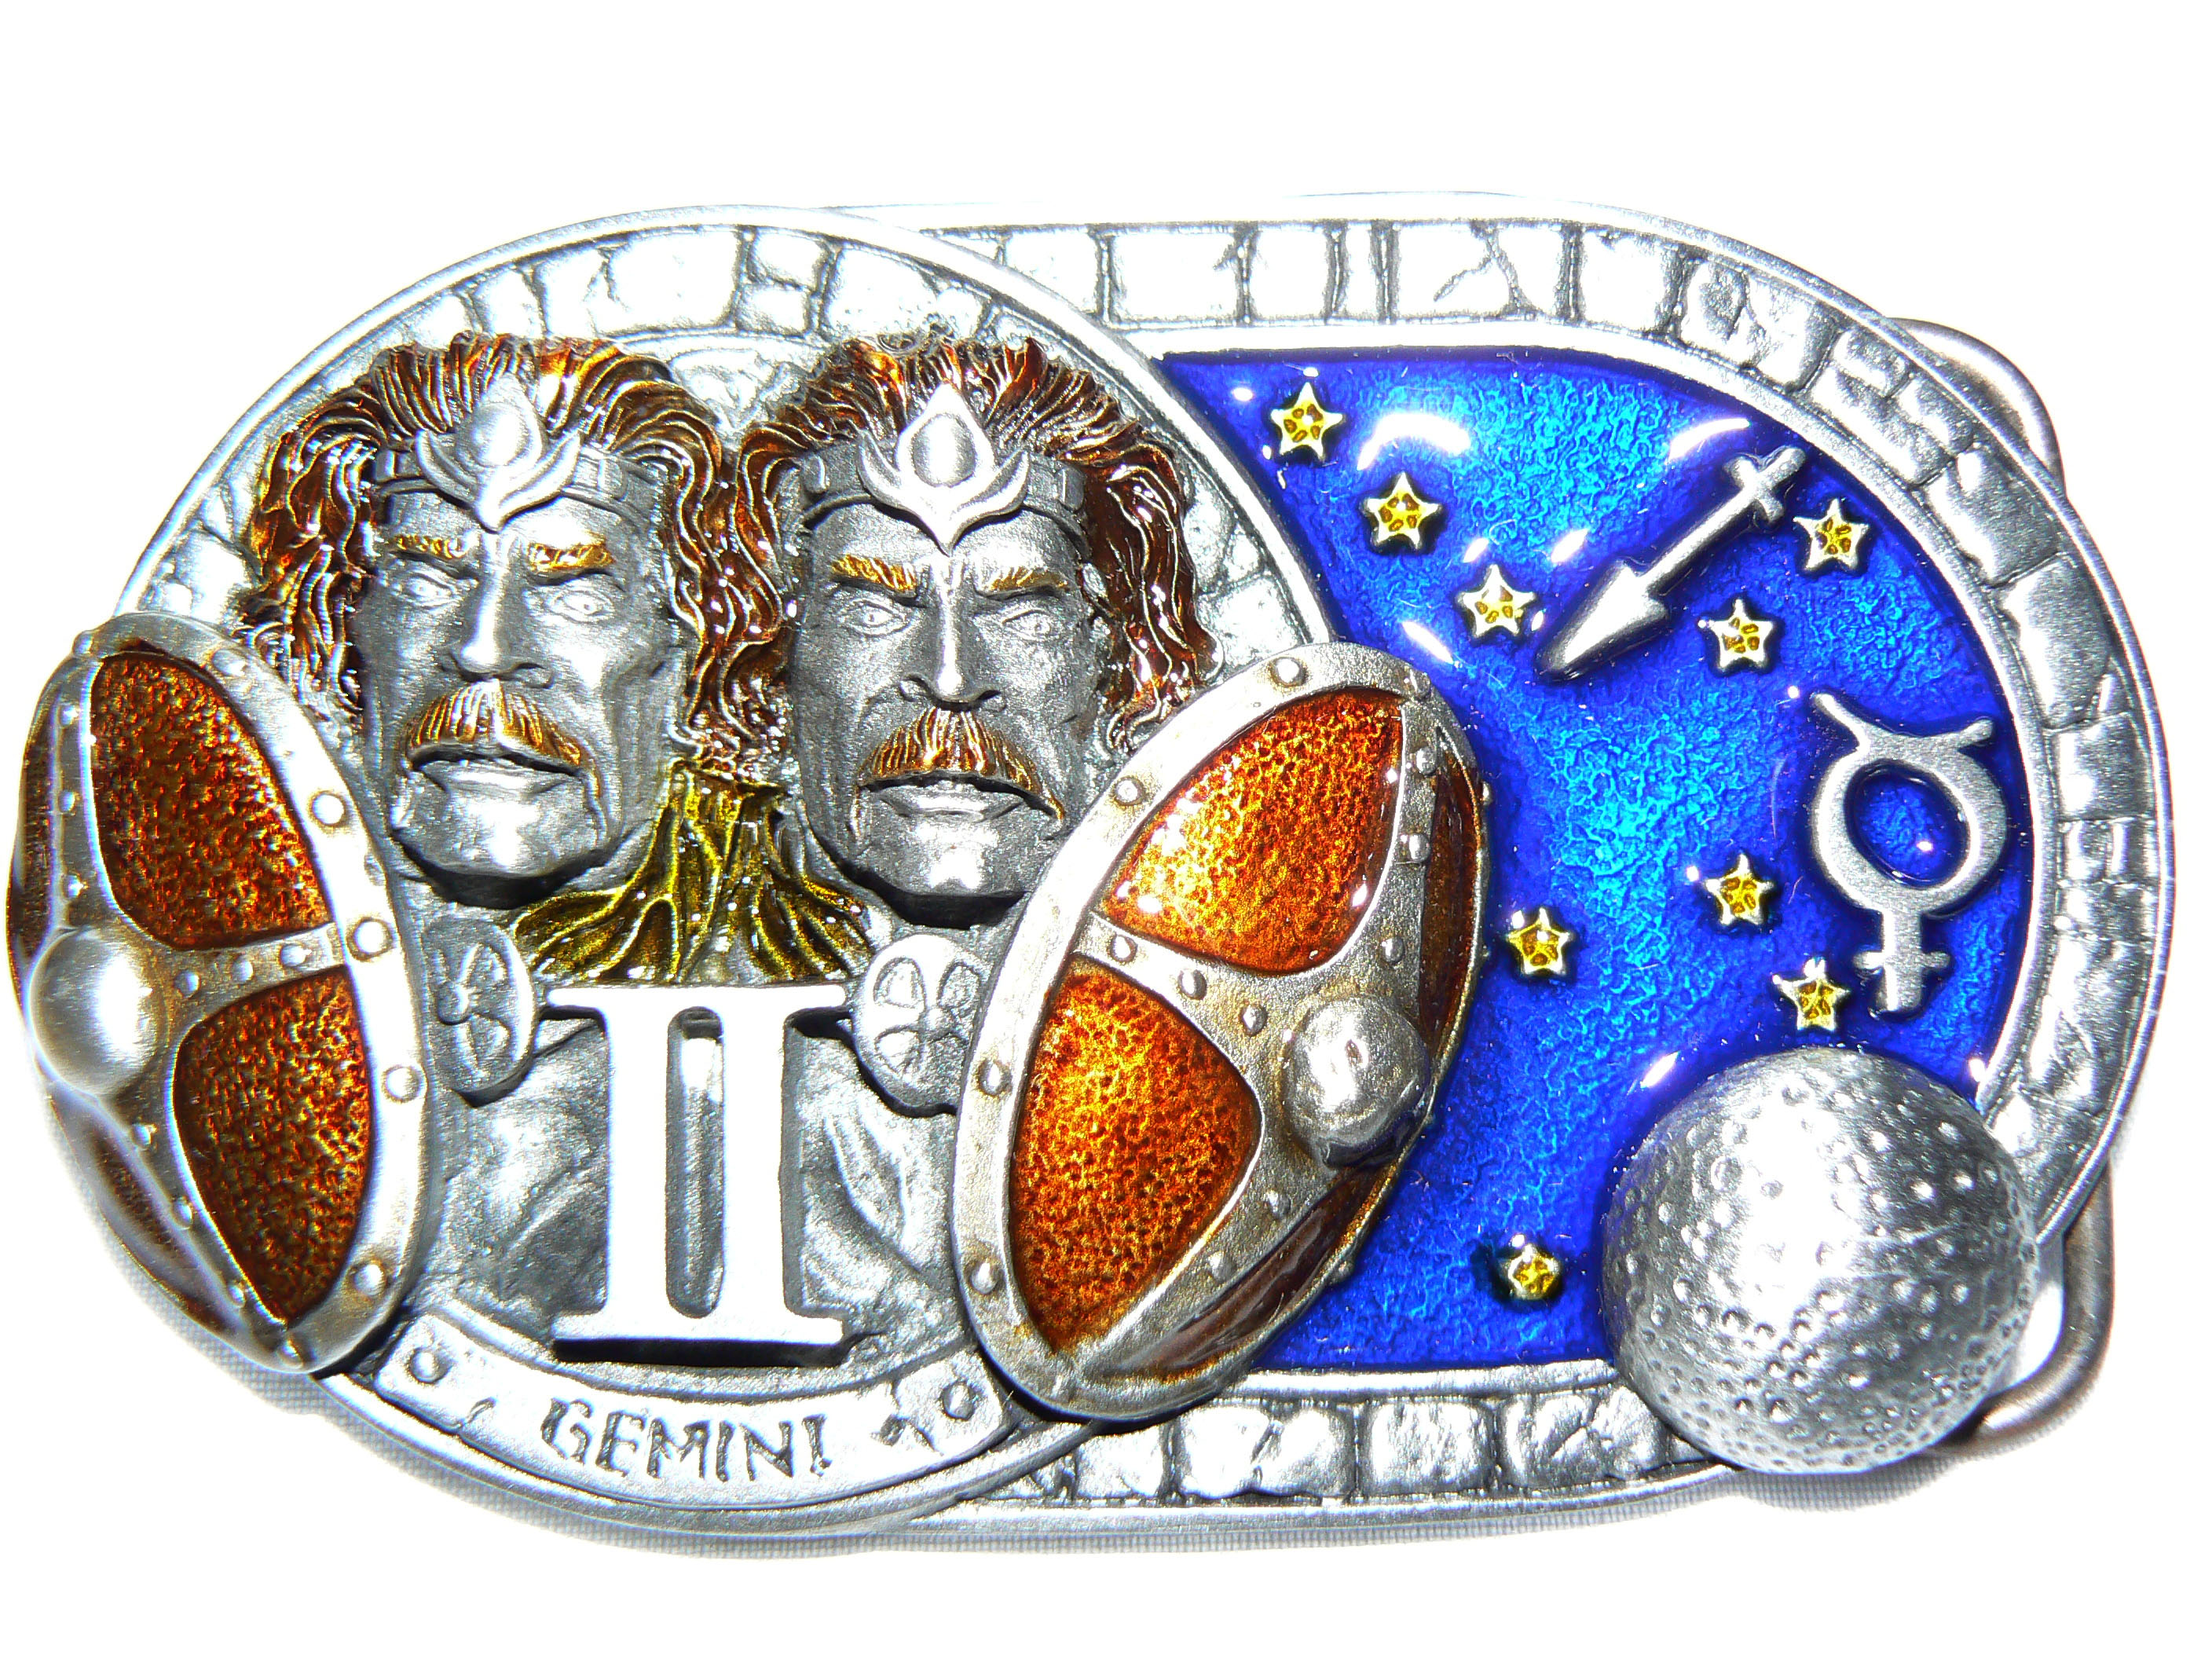 Gemini Belt Buckle